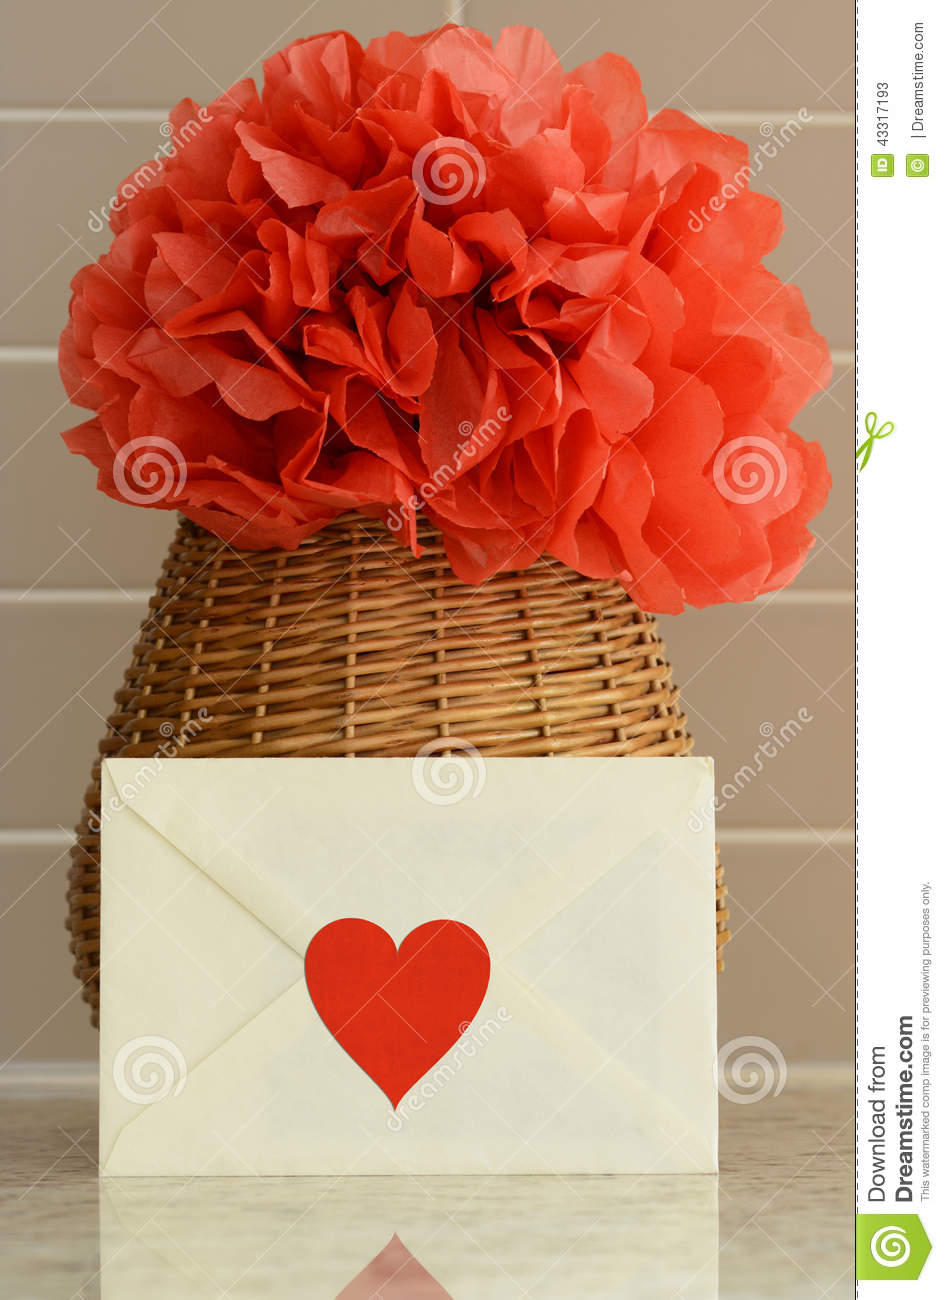 Vase Basket With Red Tissue Paper Flower On Kitchen Counter Top